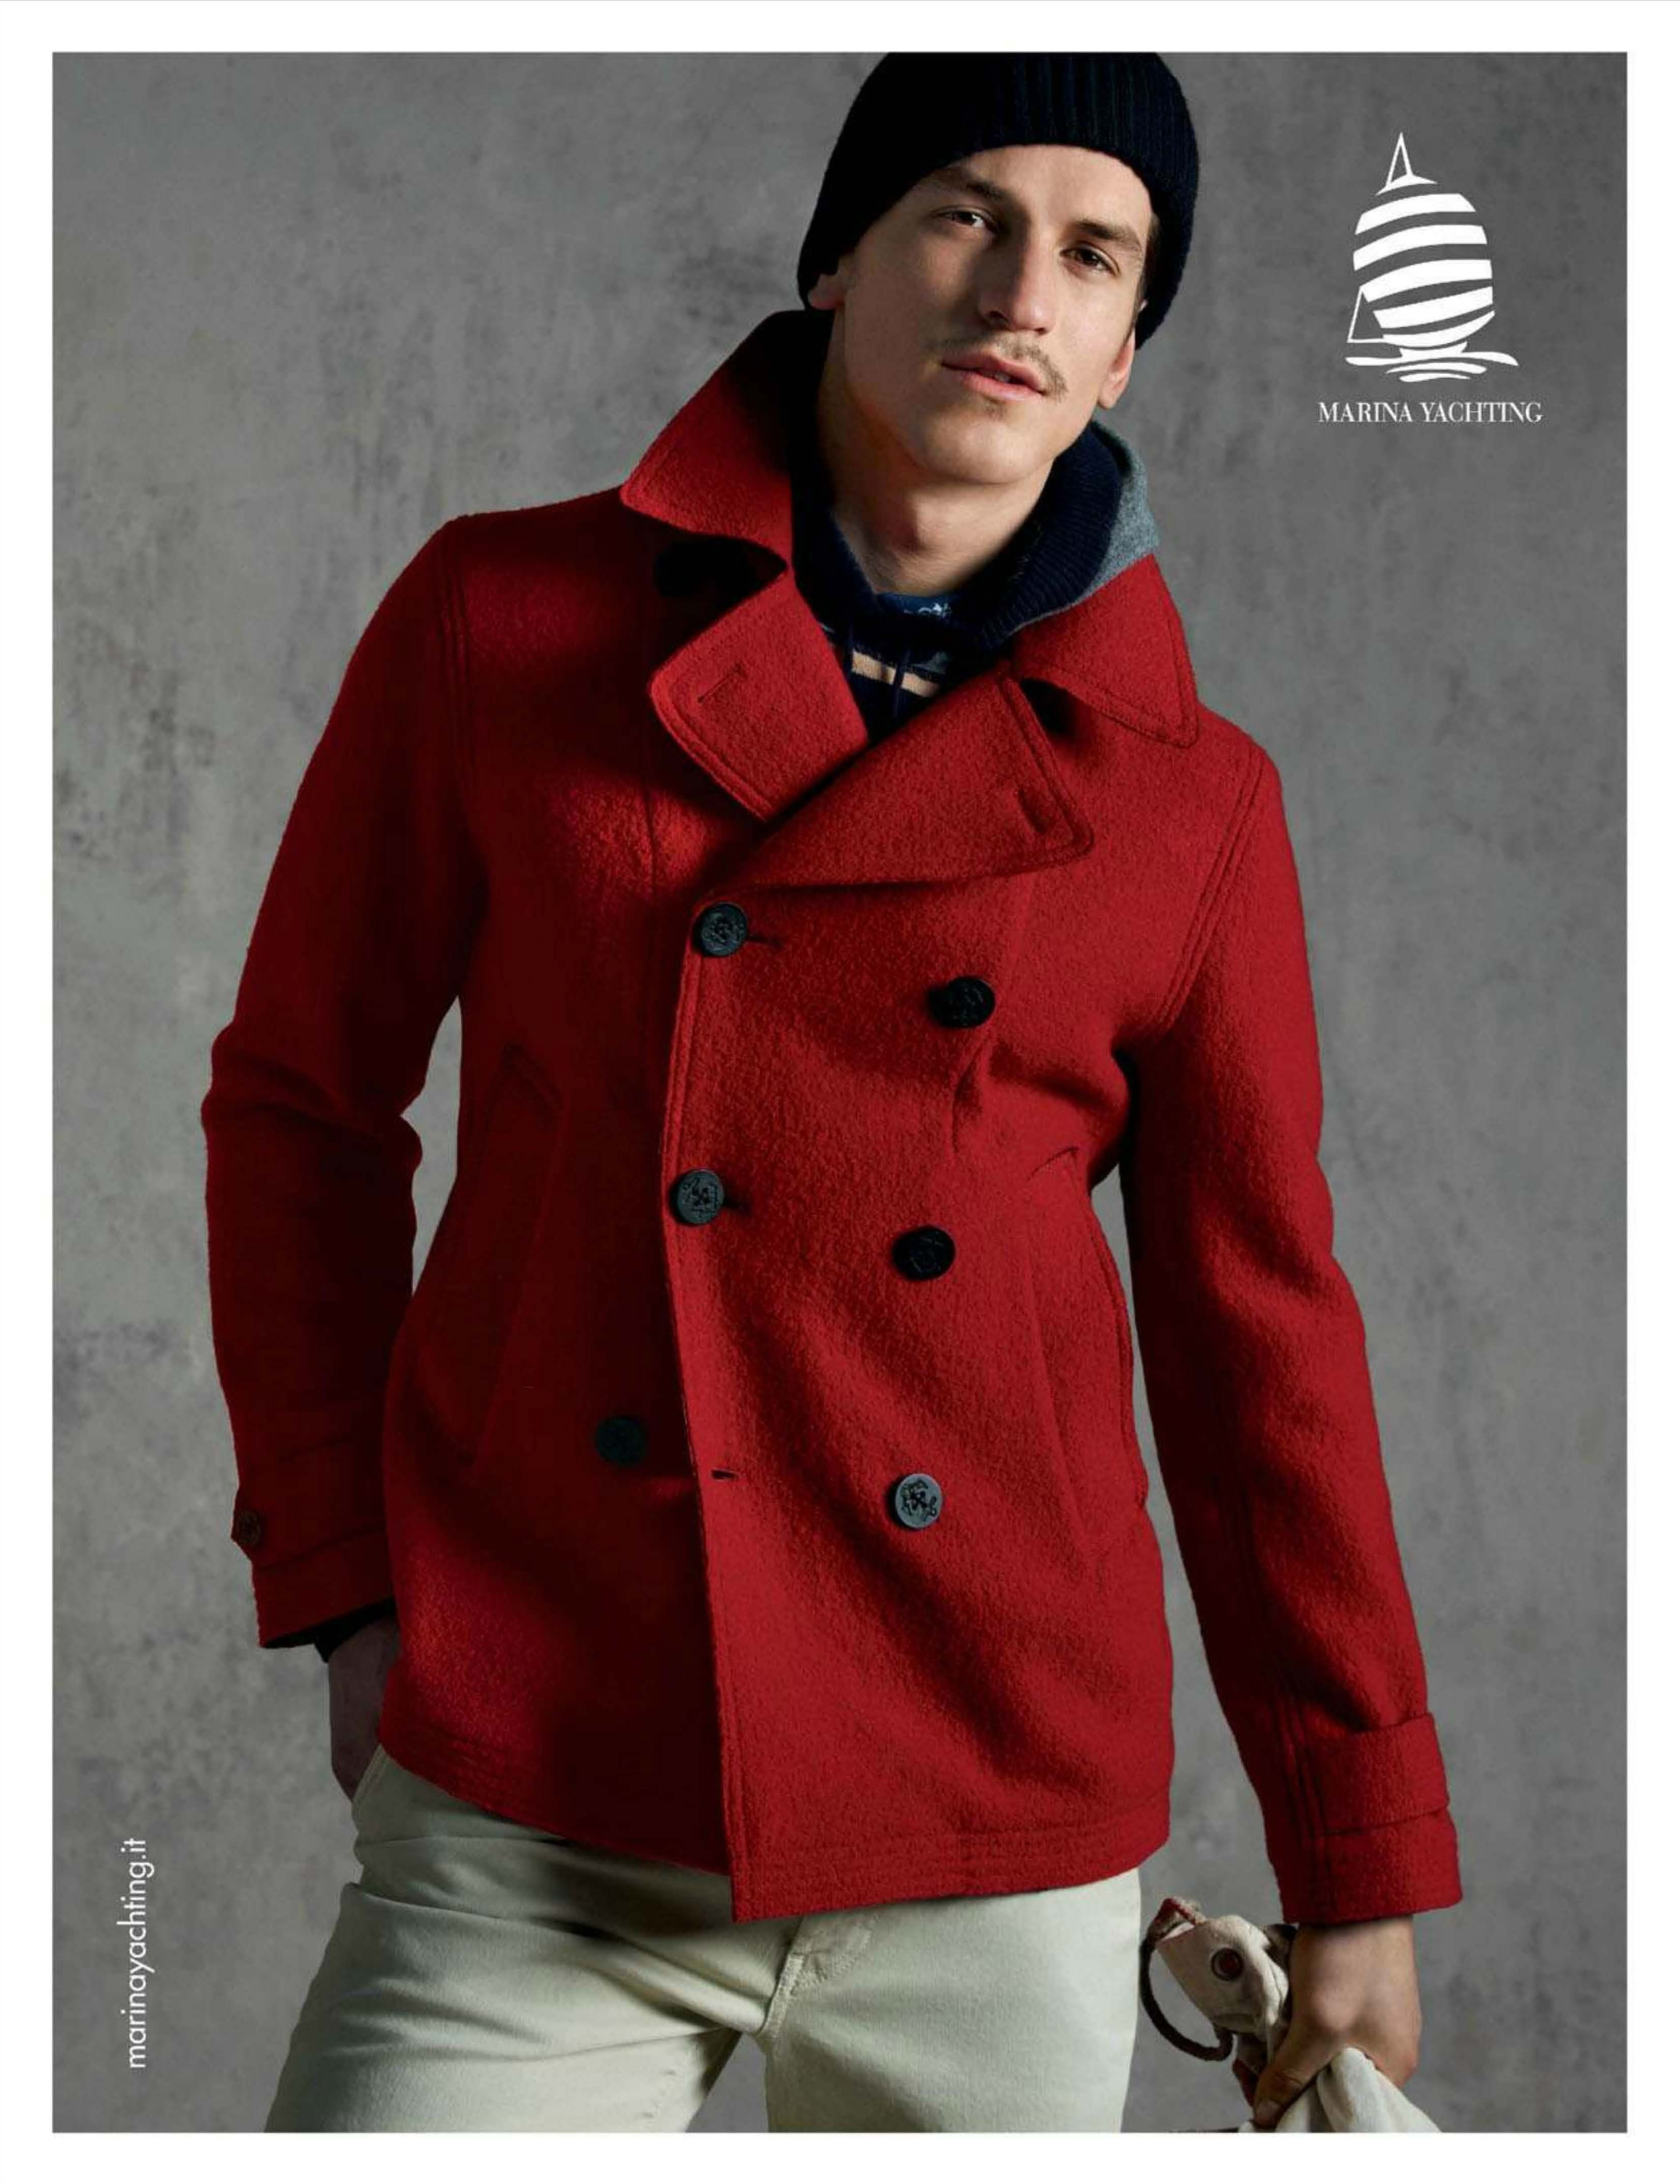 Jarrod Scott is Striking in Red for Marina Yachting Fall/Winter 2012 Campaign